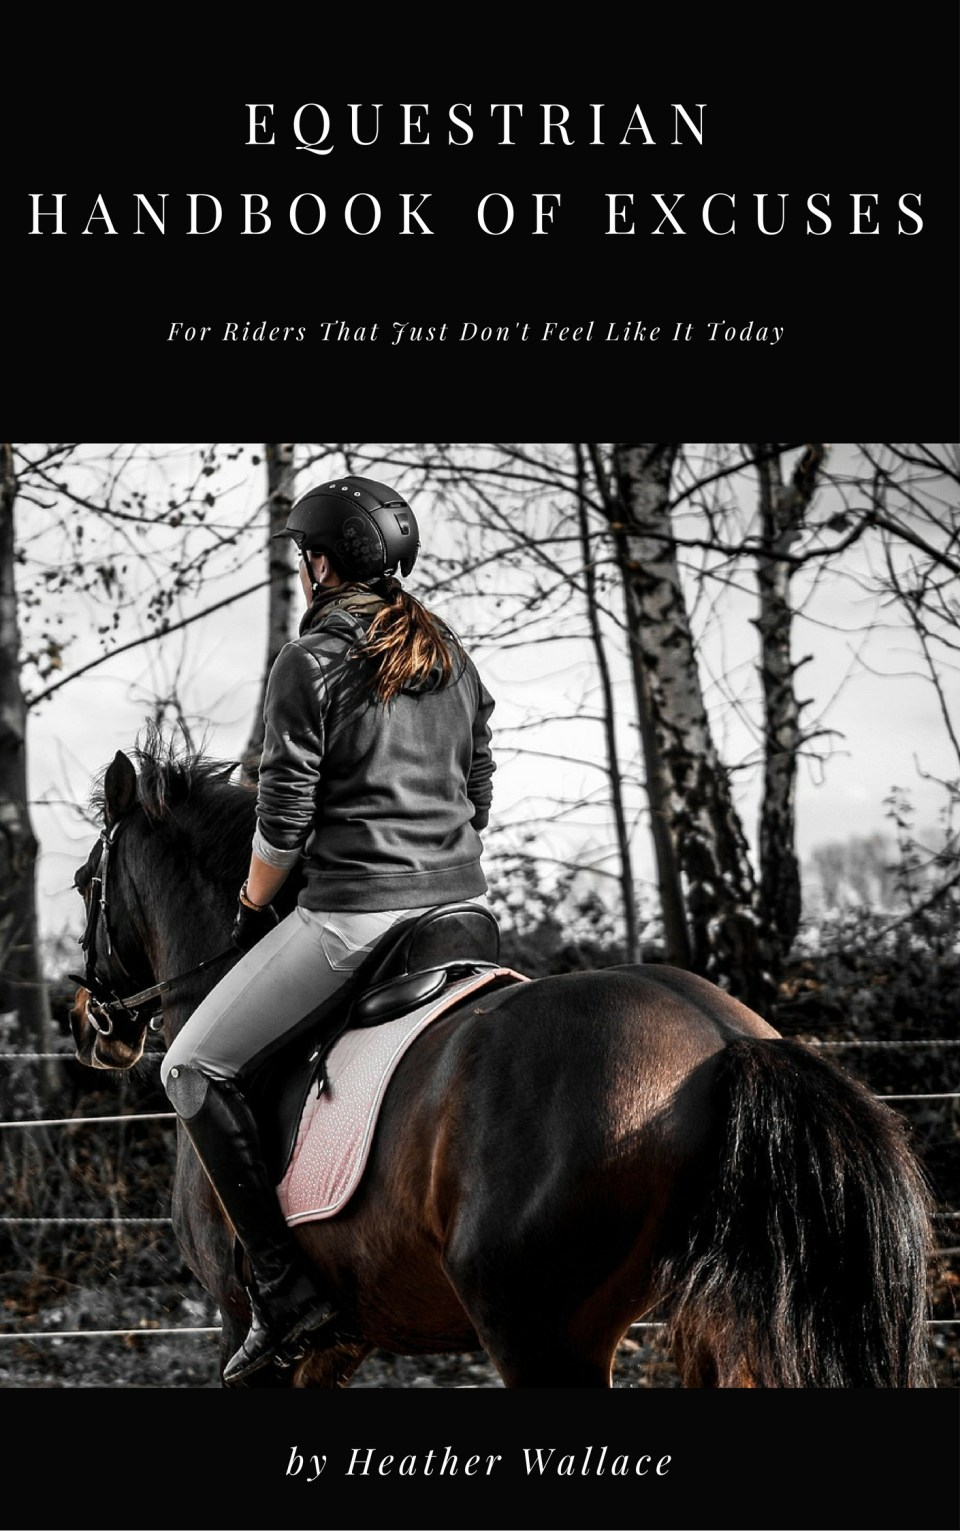 Equestrian Handbook of Excuses